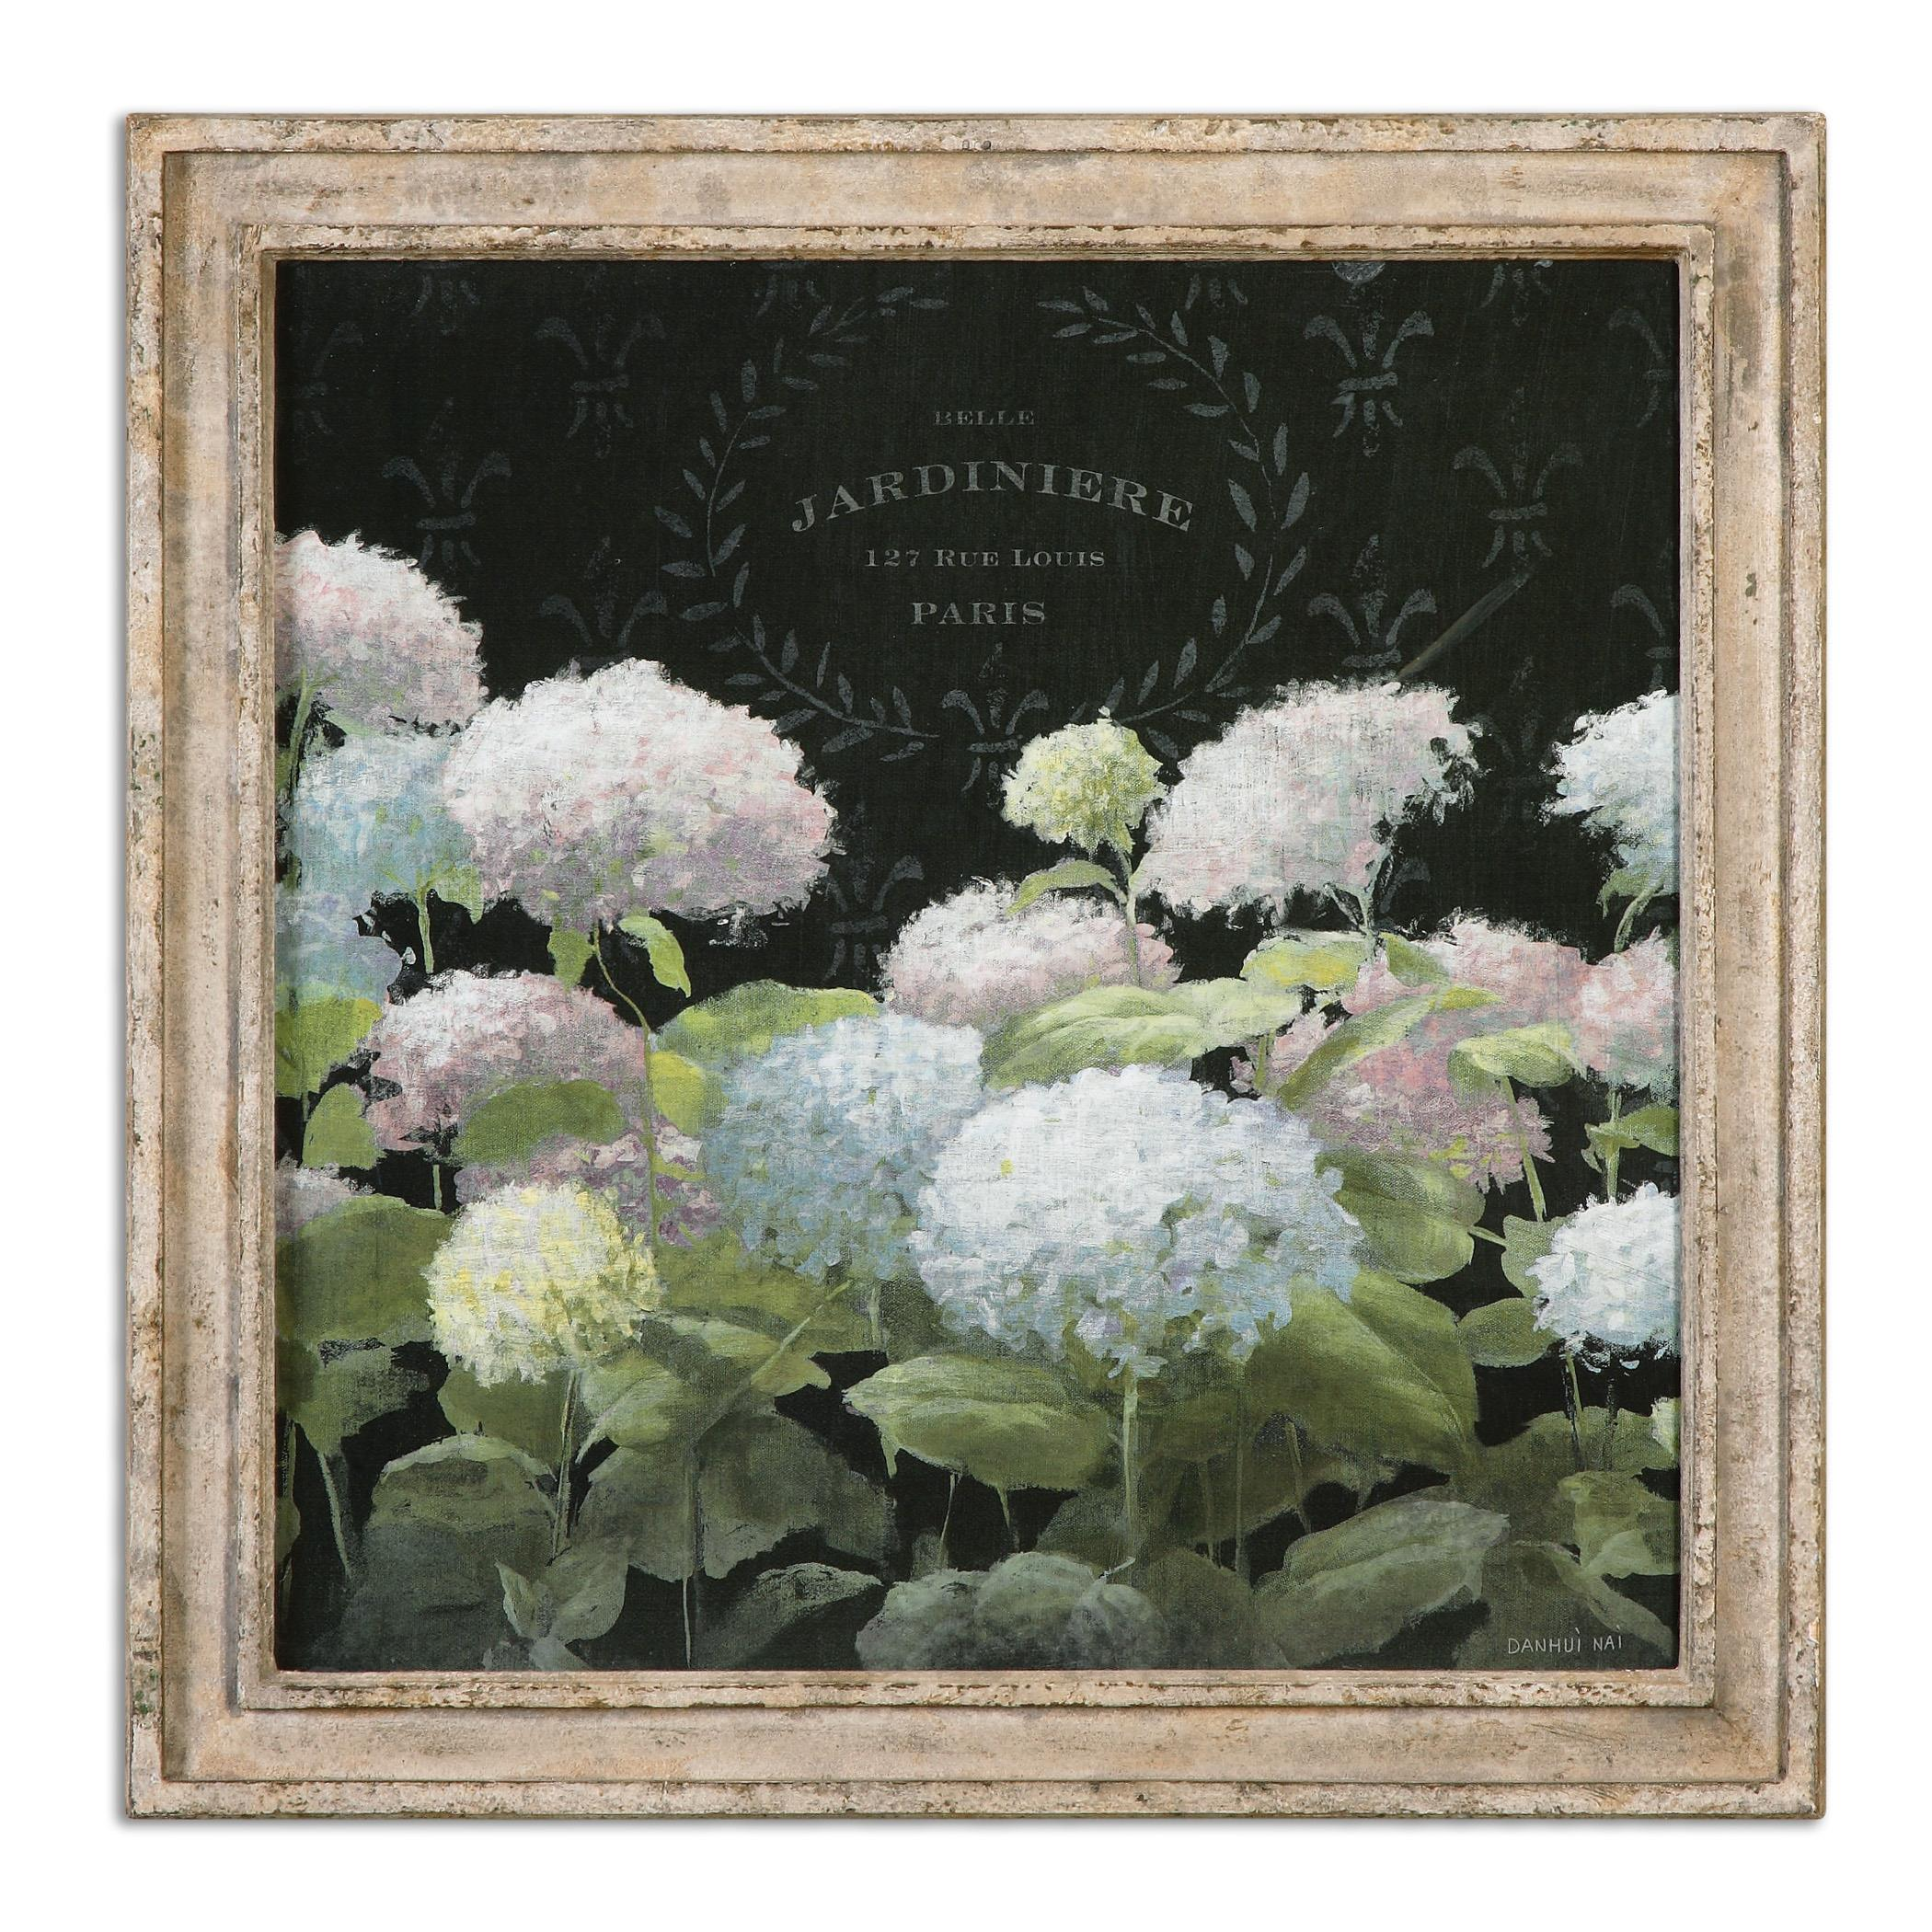 Uttermost Art La Belle Jardiniere Crop Framed Art - Item Number: 56056